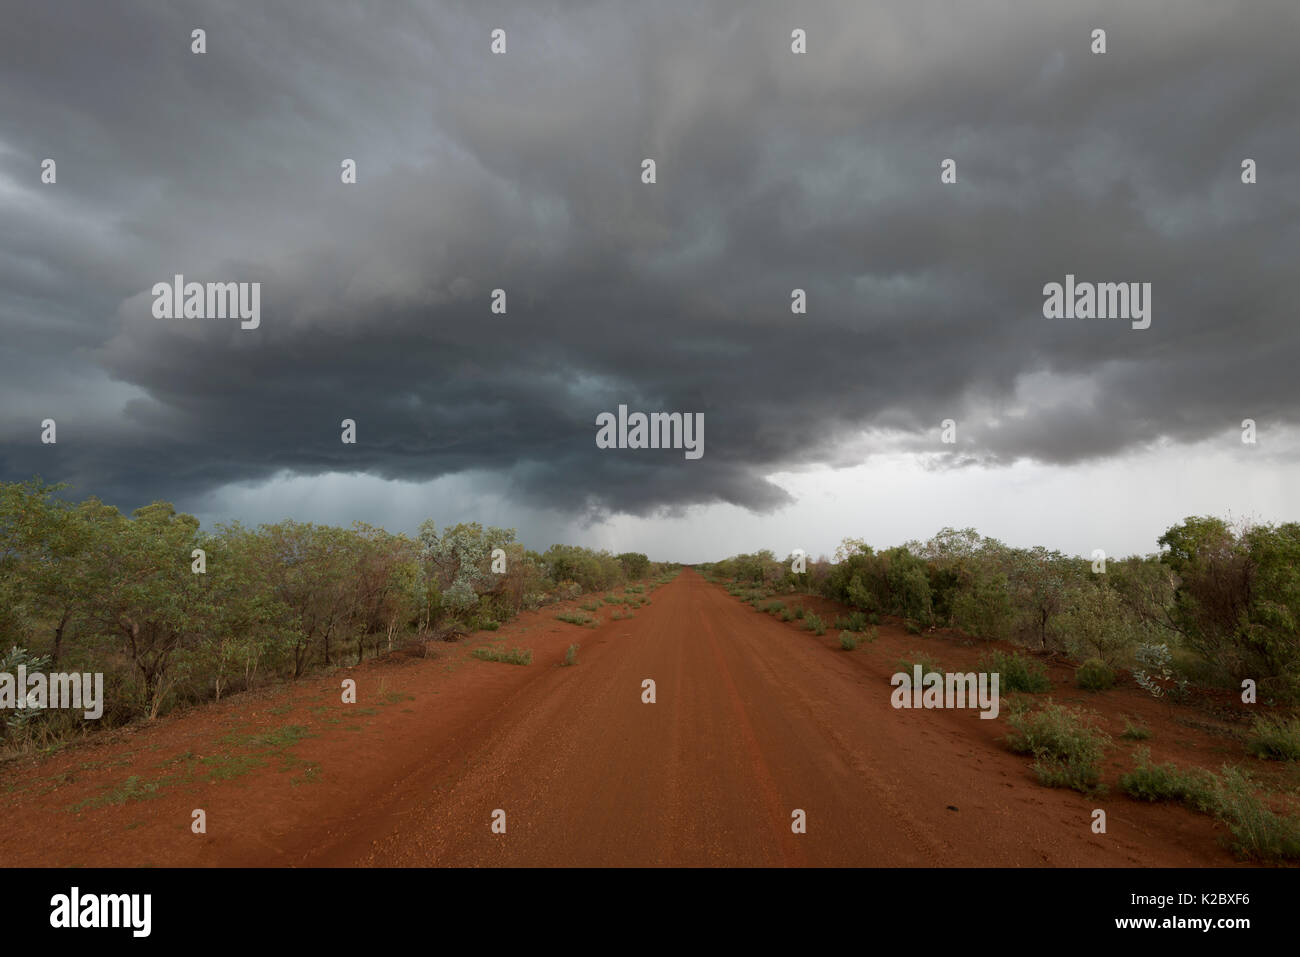 Tablelands Highway in the outback, Northern Territory, Australia. January 2013 - Stock Image